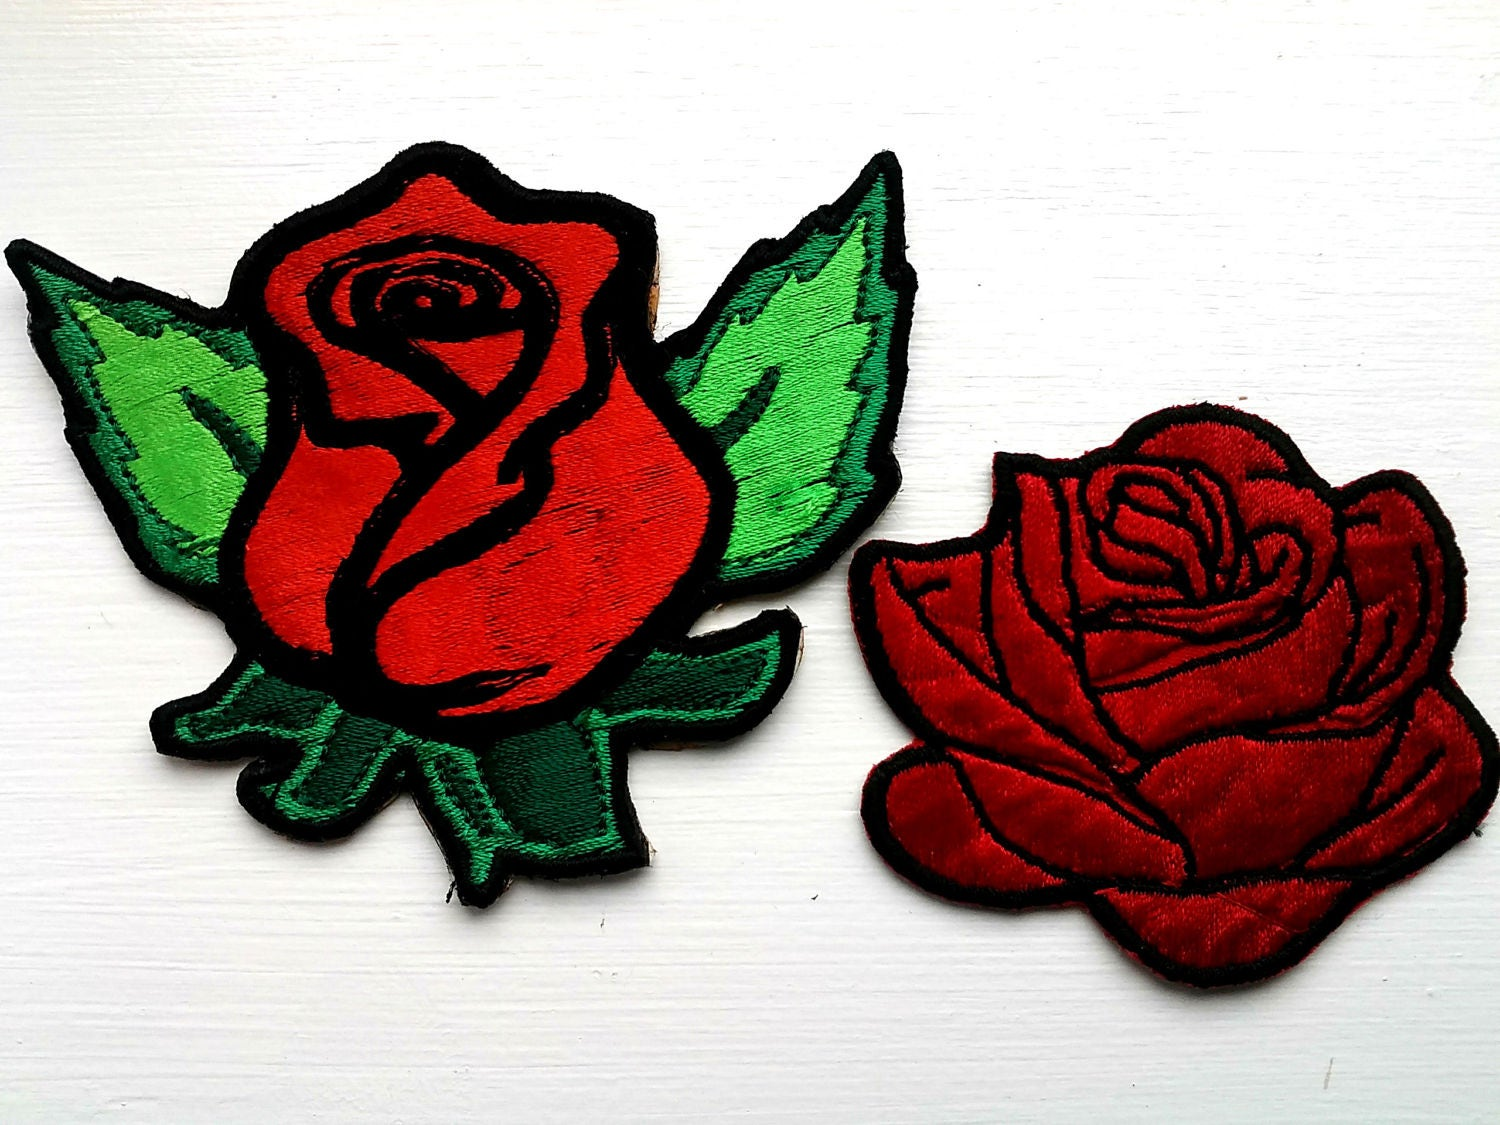 Rose Flower Floral Embroidery Patches Sew Iron On Badge Bag Hat Jeans Dress Fabric Applique